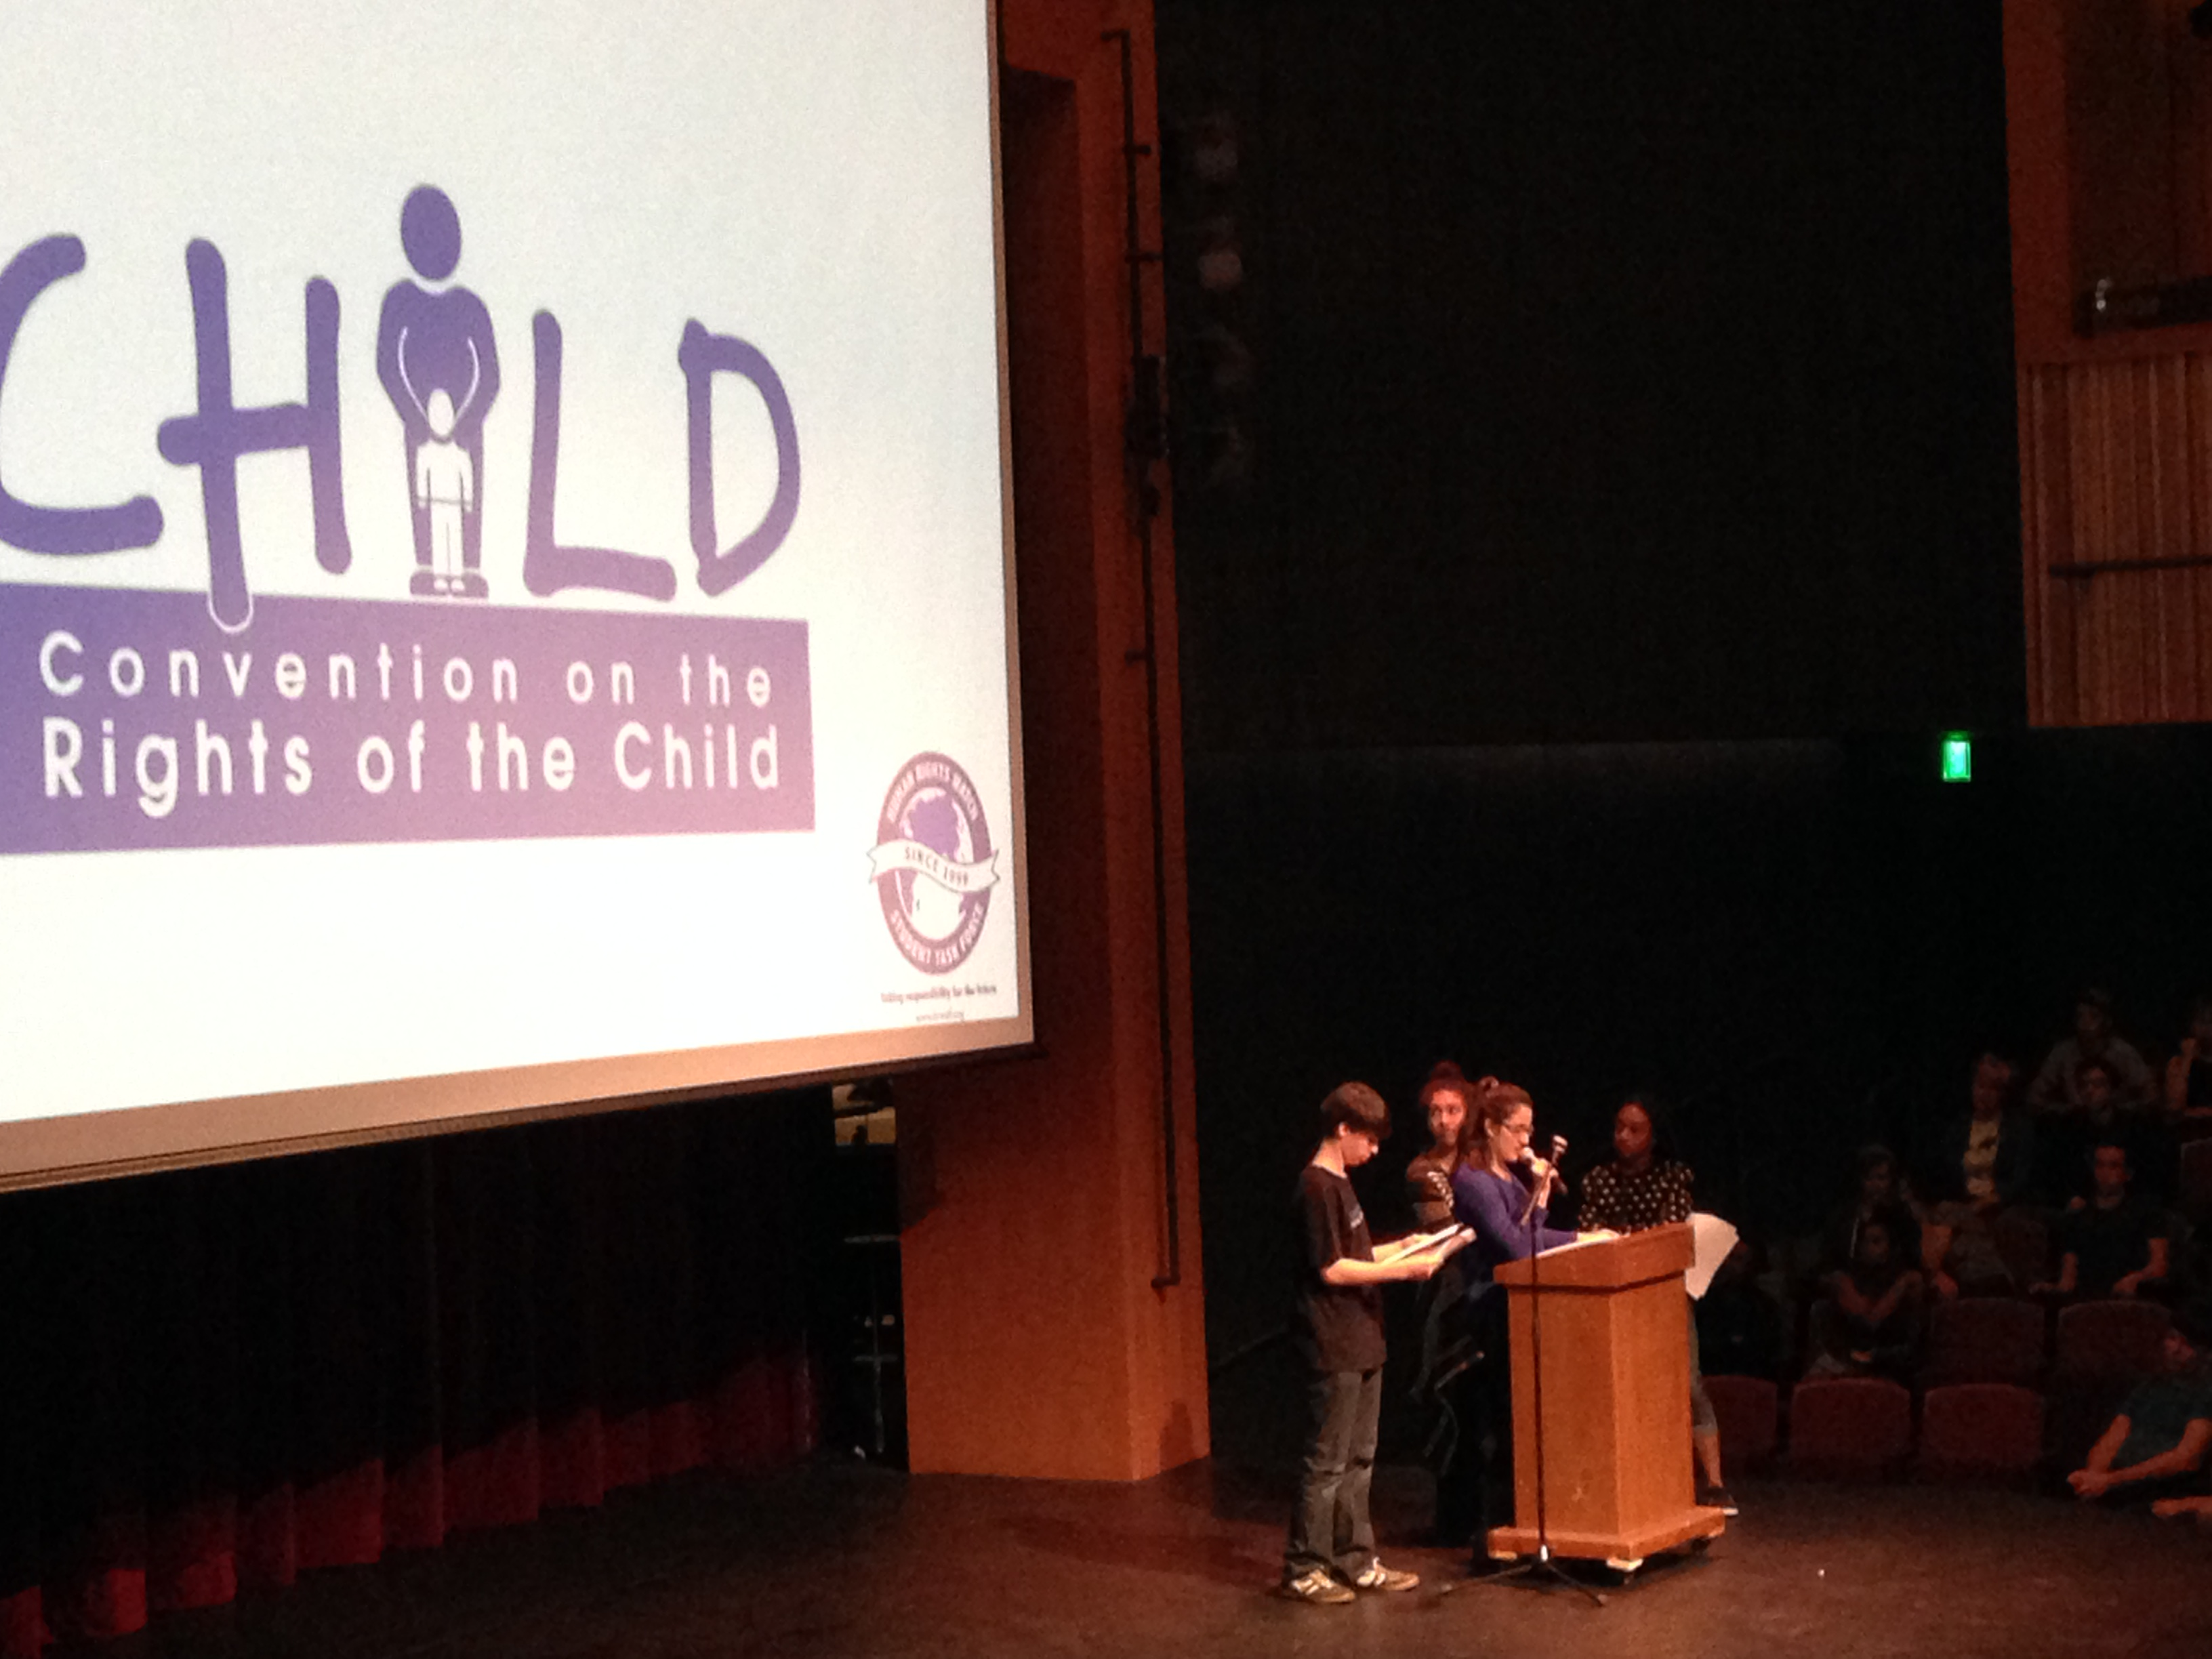 At an all school meeting, New Roads School STF presented facts about children's rights. Photo by Kristin Ghazarians.